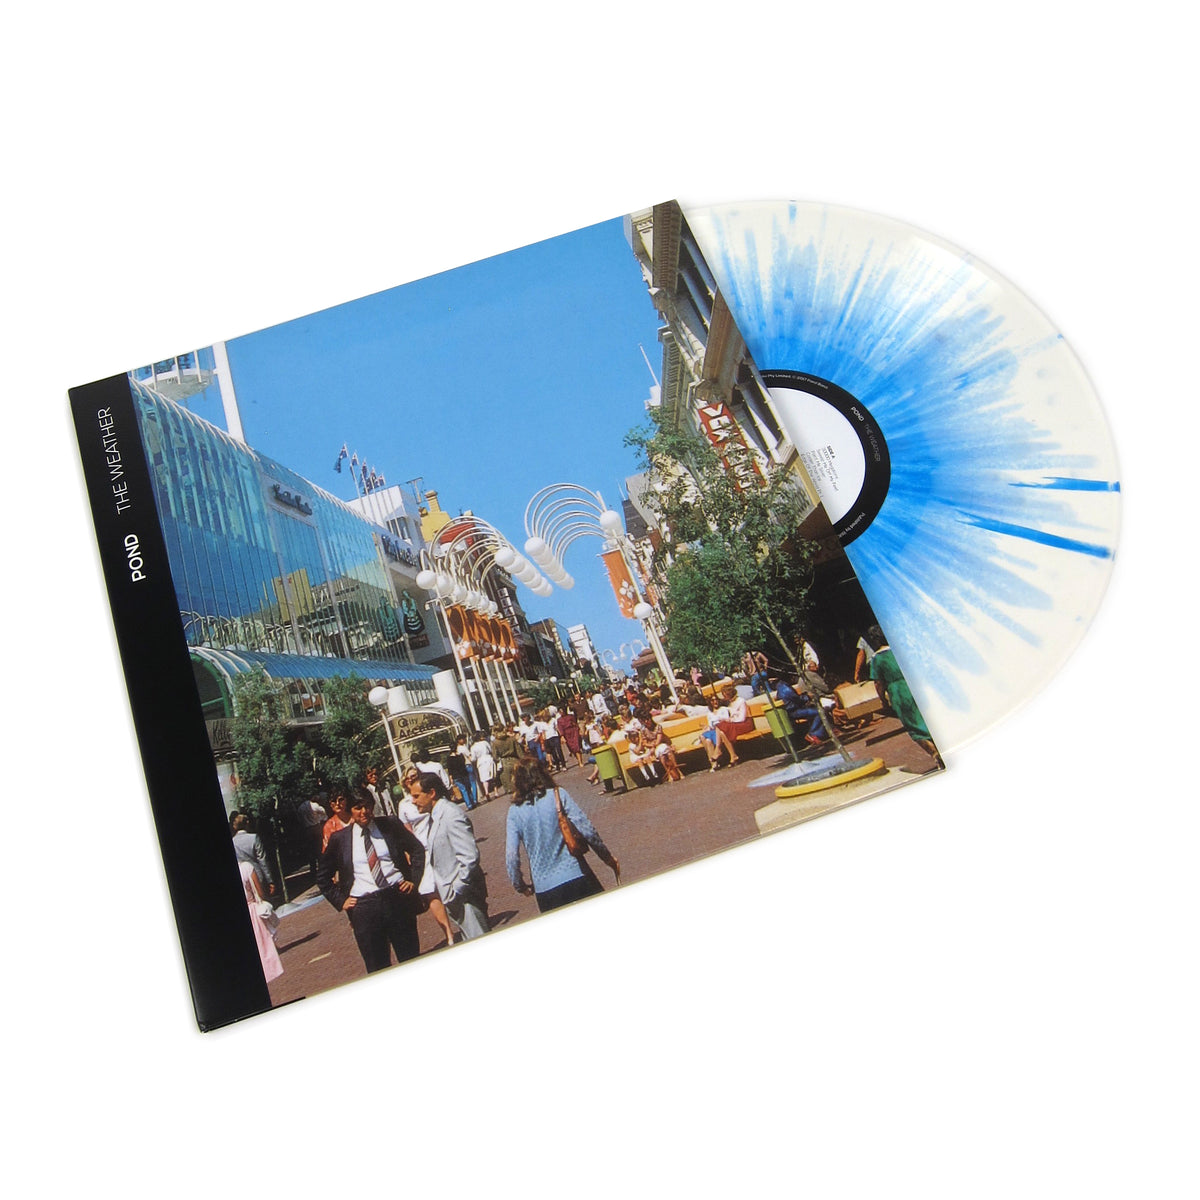 Pond: The Weather (Colored Vinyl) Vinyl LP